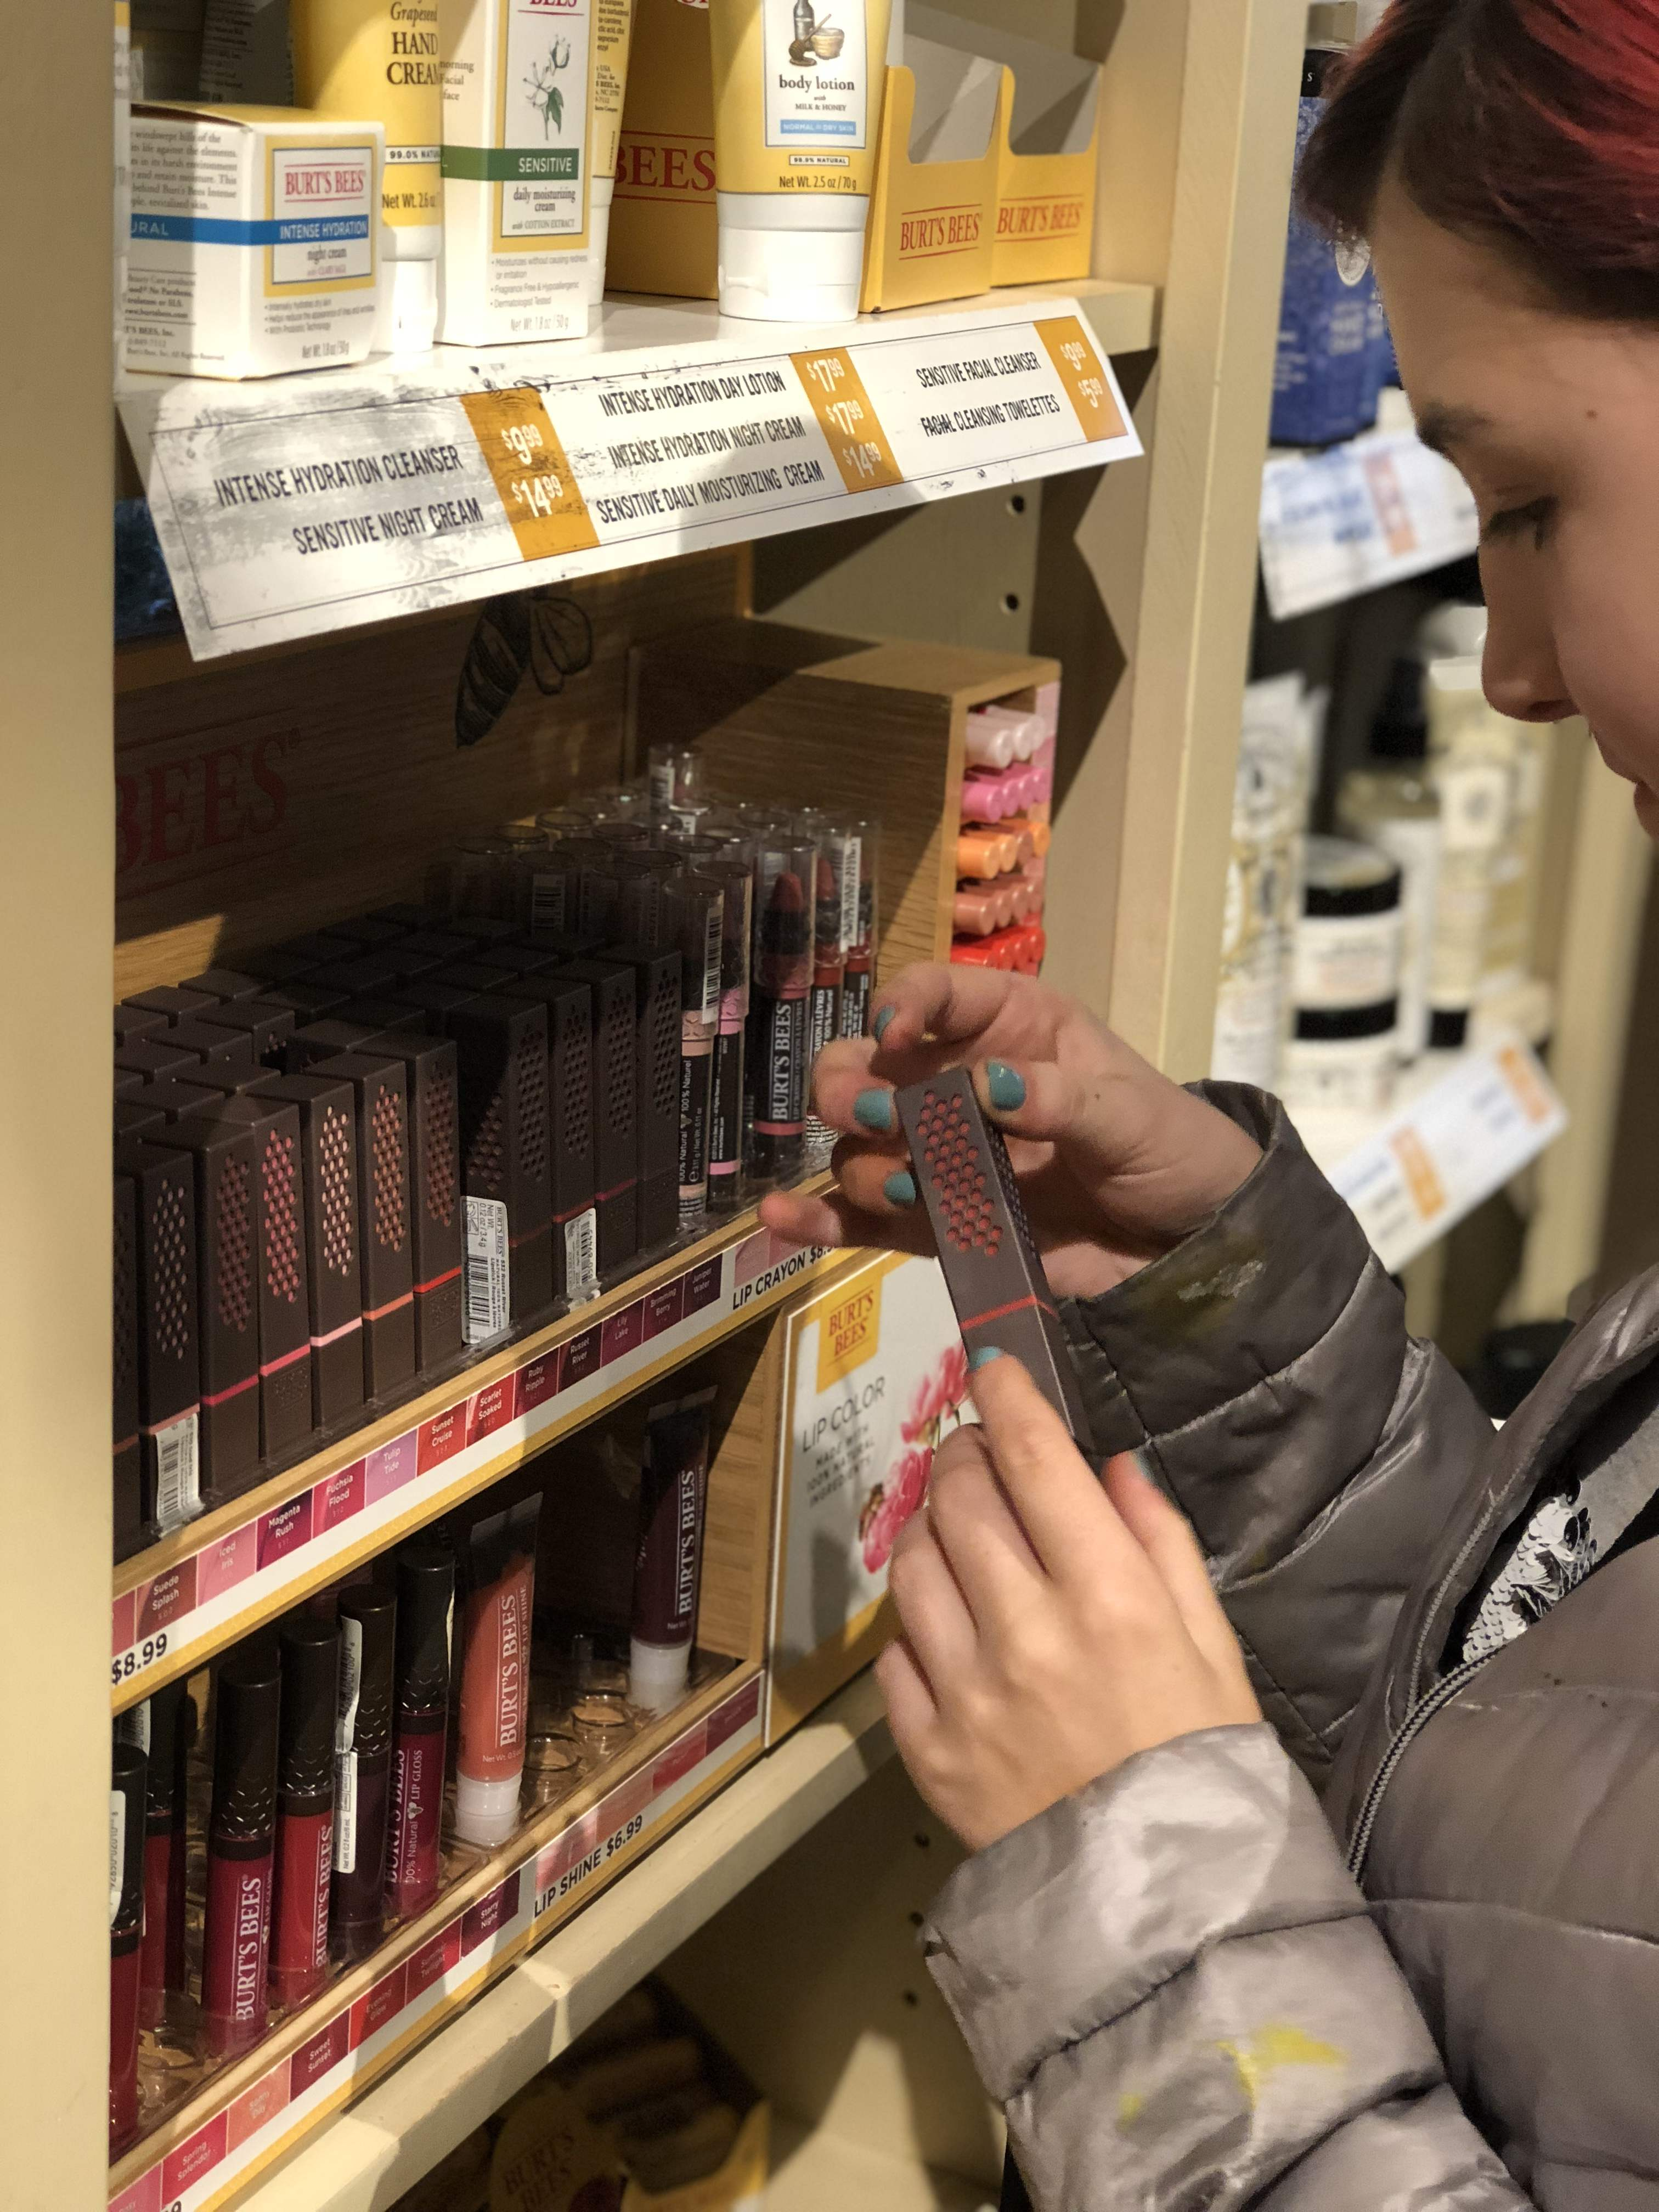 Surprising holiday gifts at Cracker Barrel: Burt's Bees | sponsor